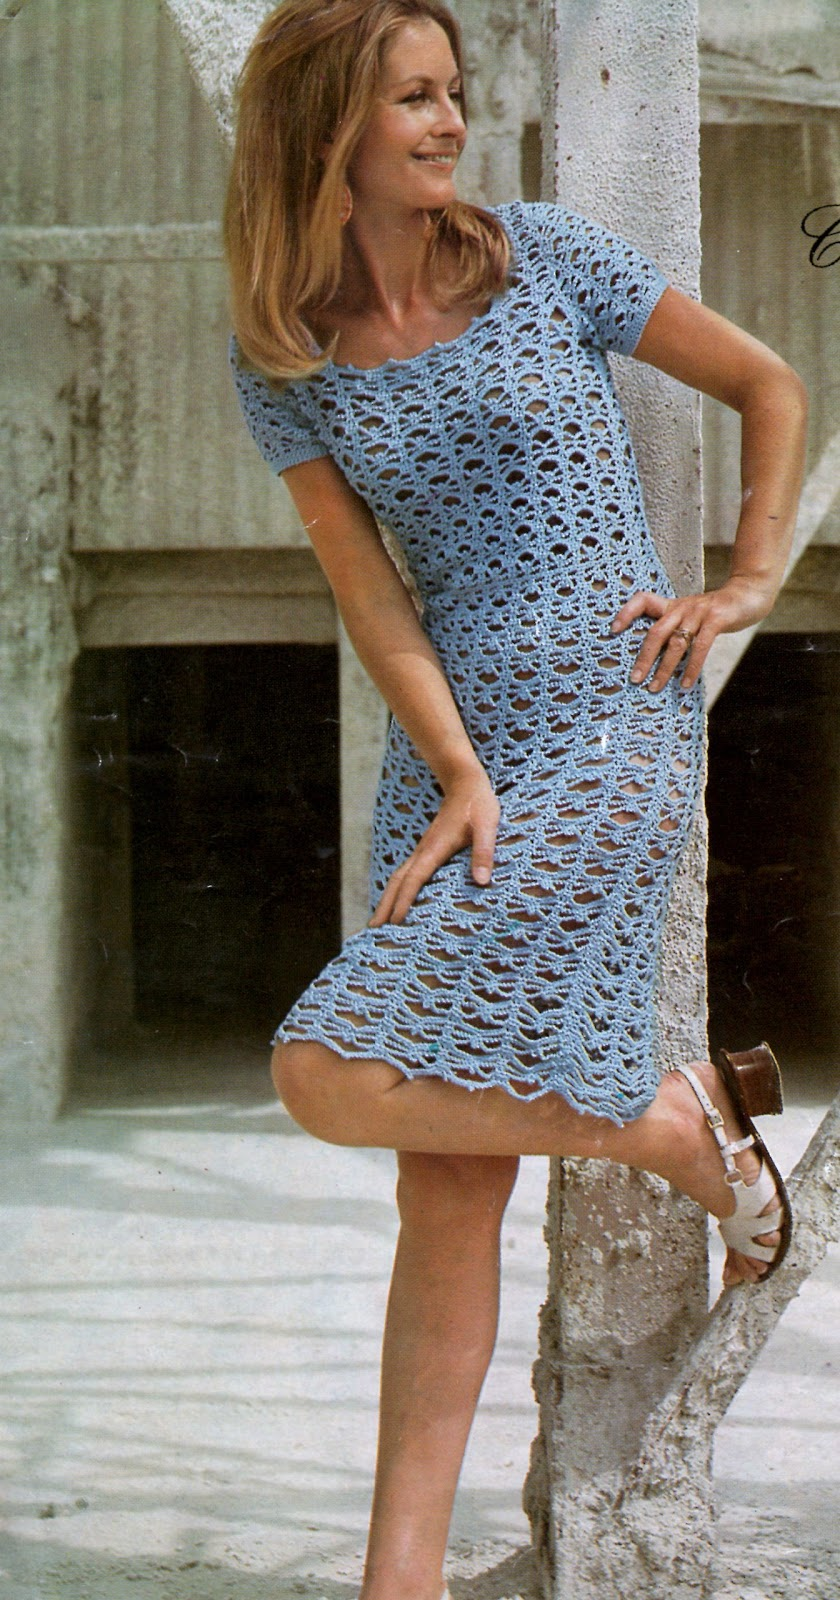 Crochet Dress : Vintage crochet Dress Pattern by direct download PDF file